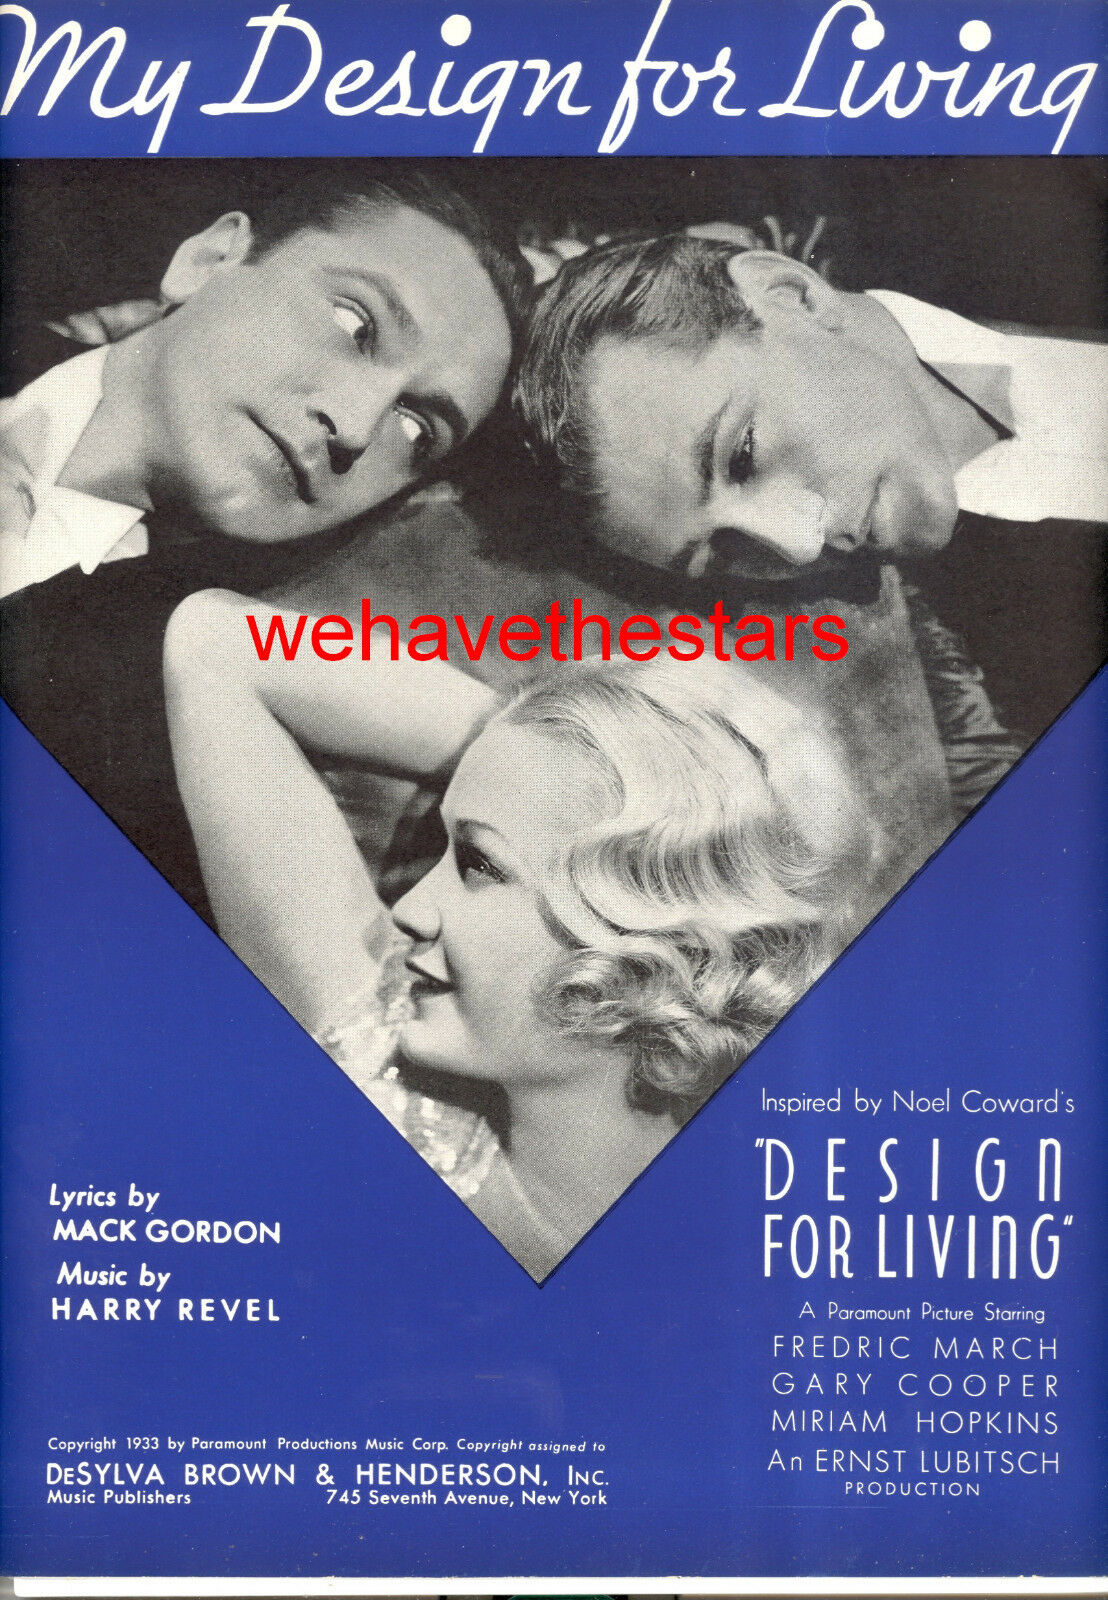 DESIGN FOR LIVING Sheet Music Gary Cooper Miriam Hopkins Frotric March MINT